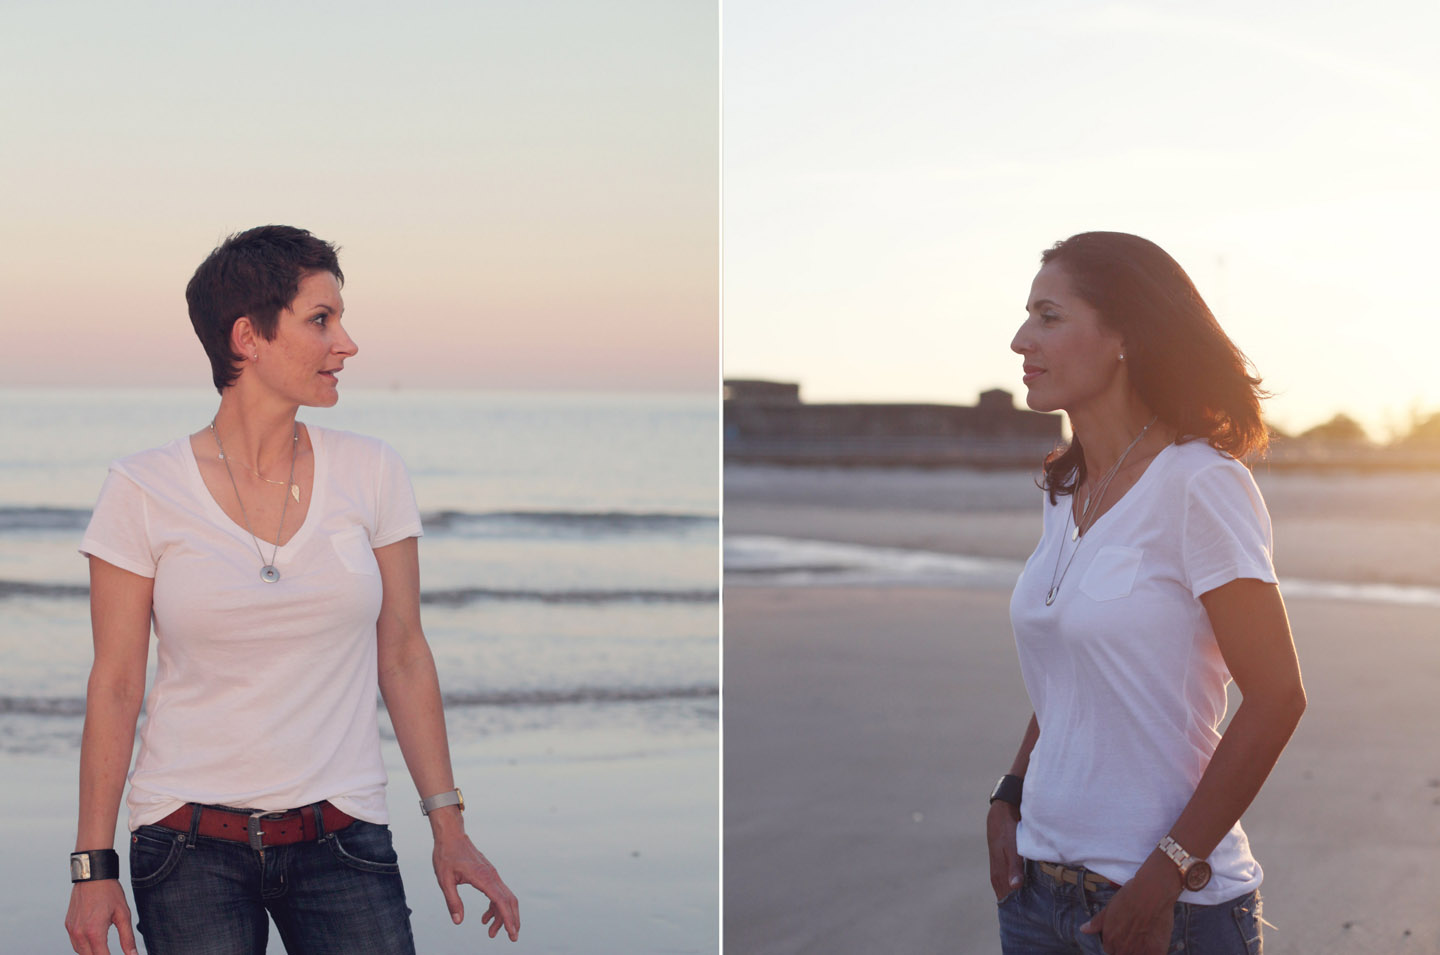 Richmond Fort Monroe Virginia Lesbian Wedding Photographer Engagement Session Marriage Equality